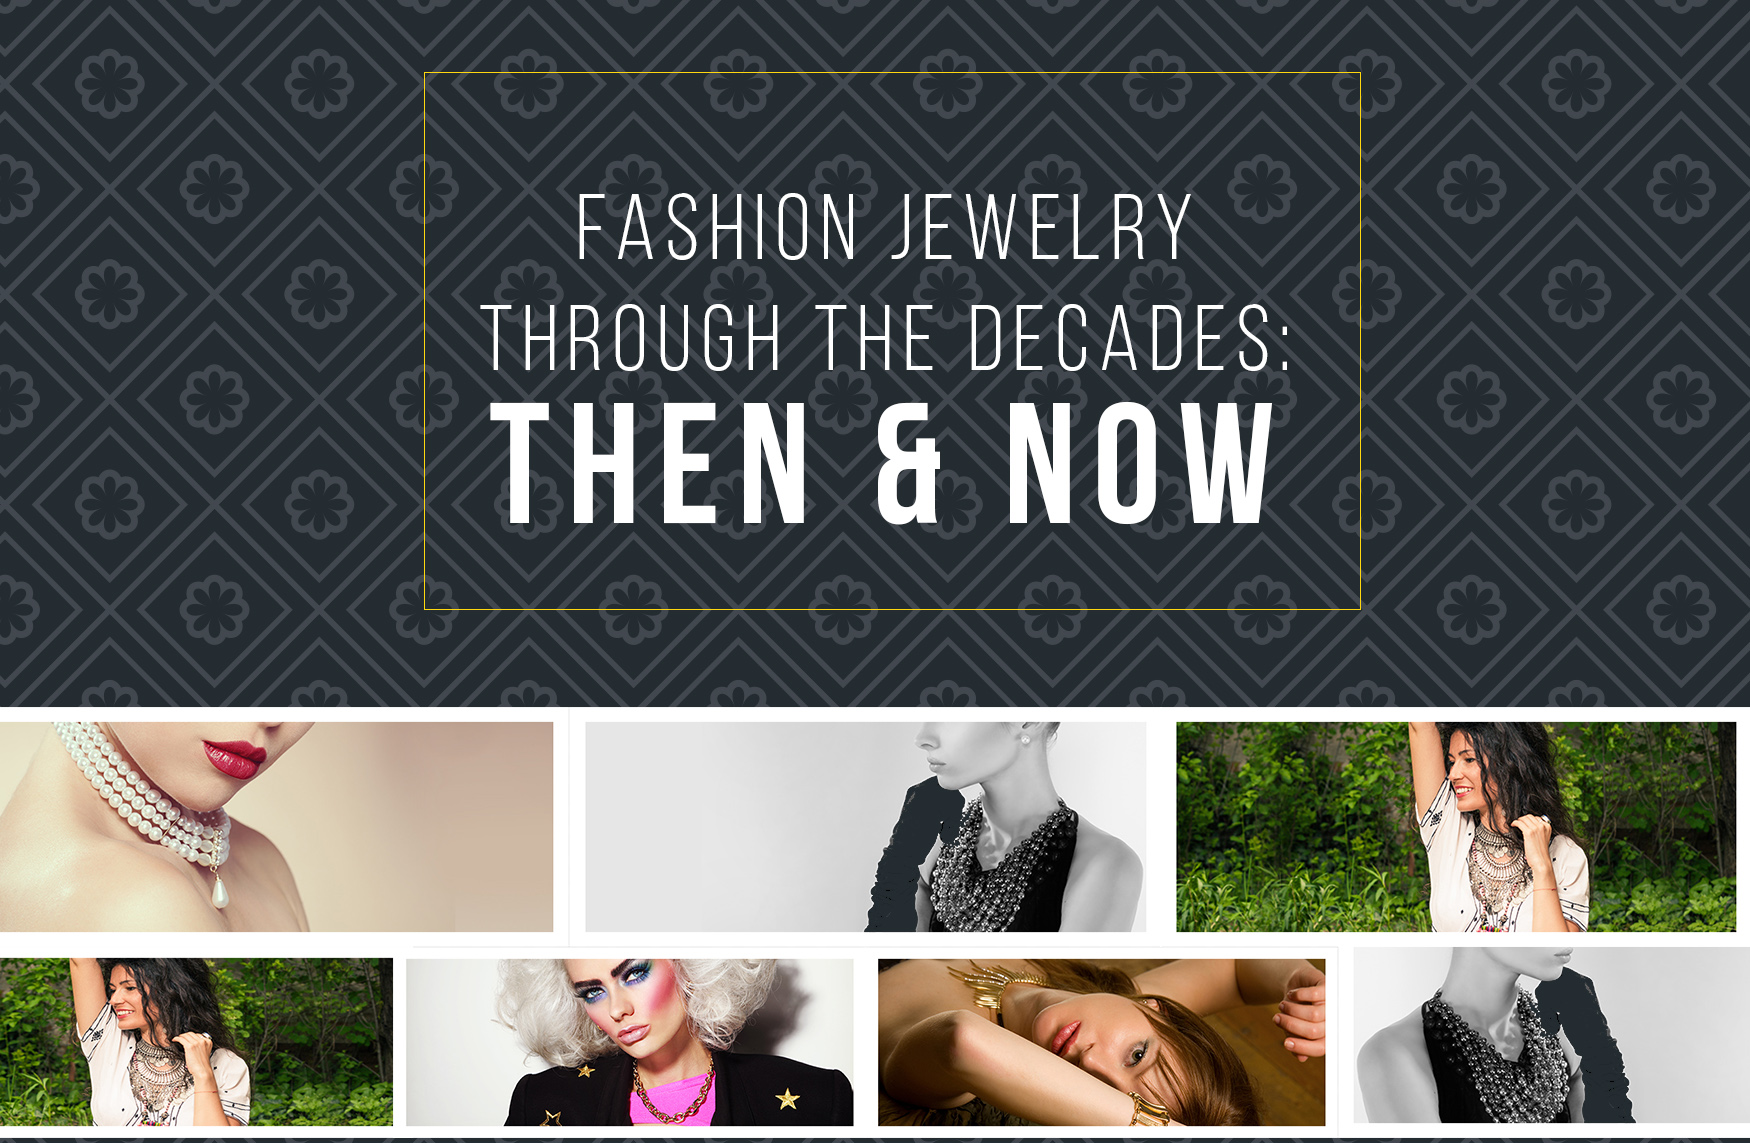 Fashion Jewelry through the Decades: Then And Now